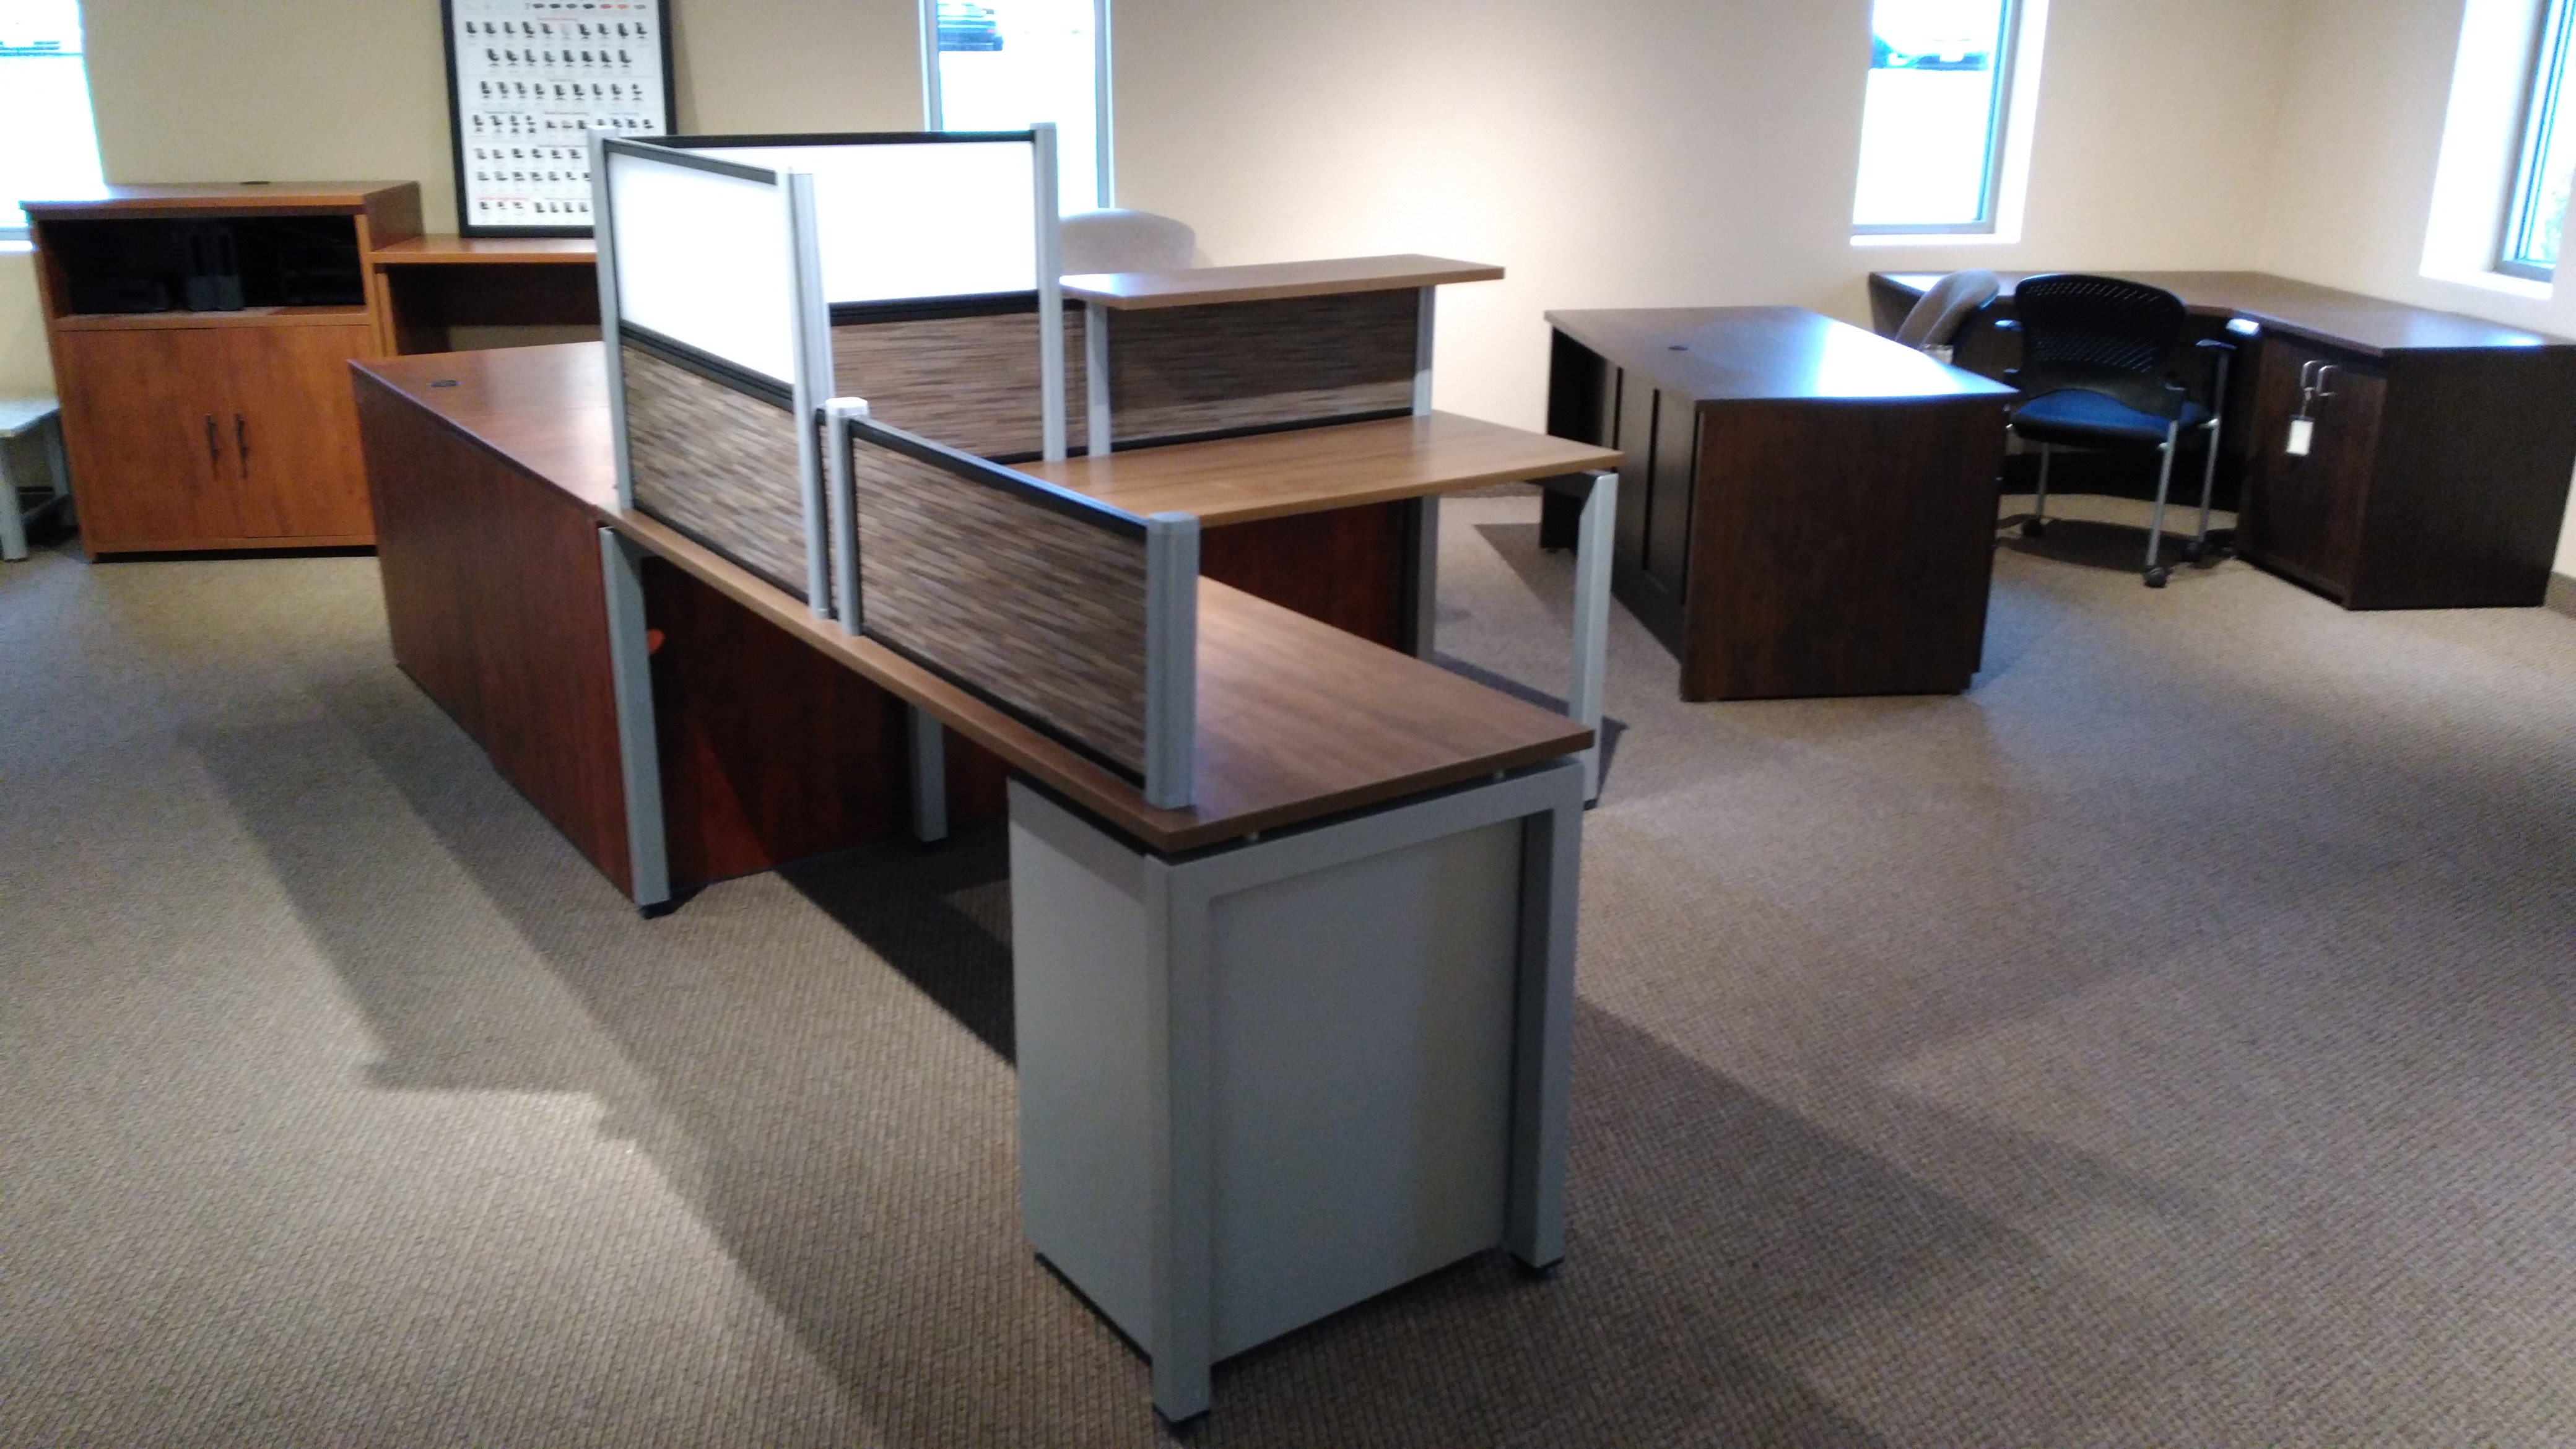 Clearance section desq we create space minnesota furniture for home and office - Clearance home office furniture ...